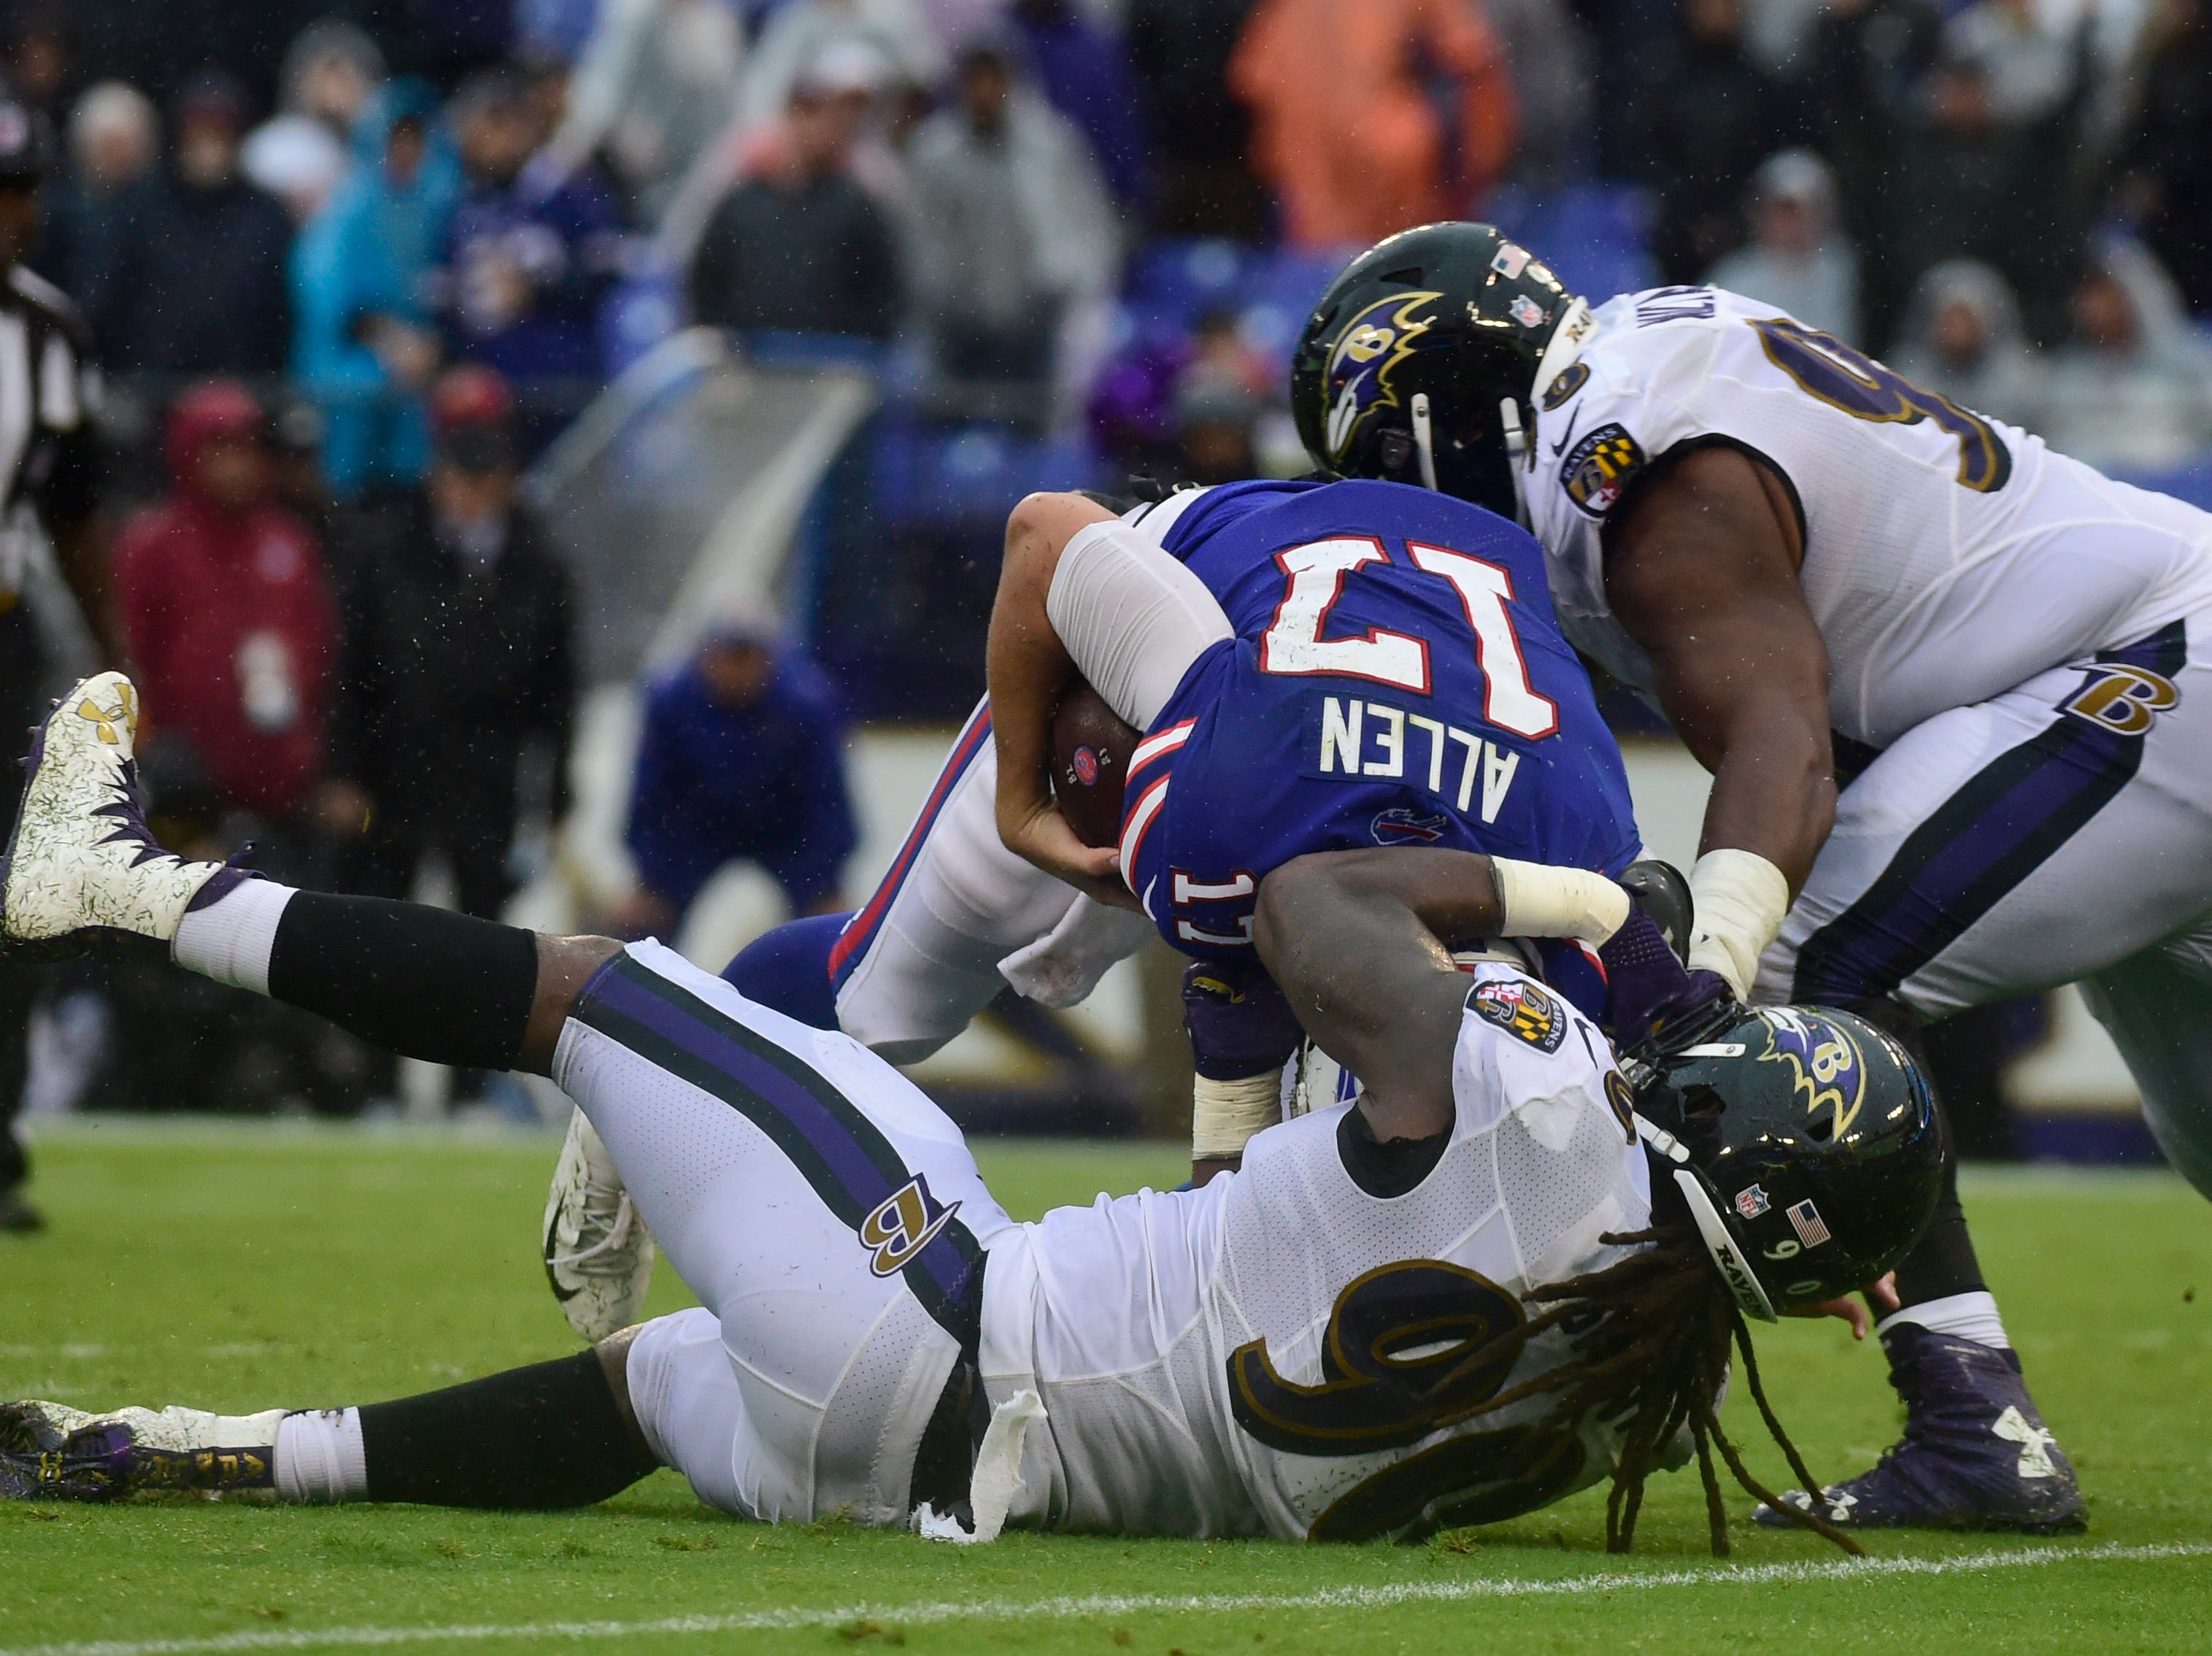 Baltimore Ravens linebacker Za'Darius Smith (90) sacks Buffalo Bills quarterback Josh Allen (17) during the third quarter at M&T Bank Stadium. Mandatory Credit: Tommy Gilligan-USA TODAY Sports